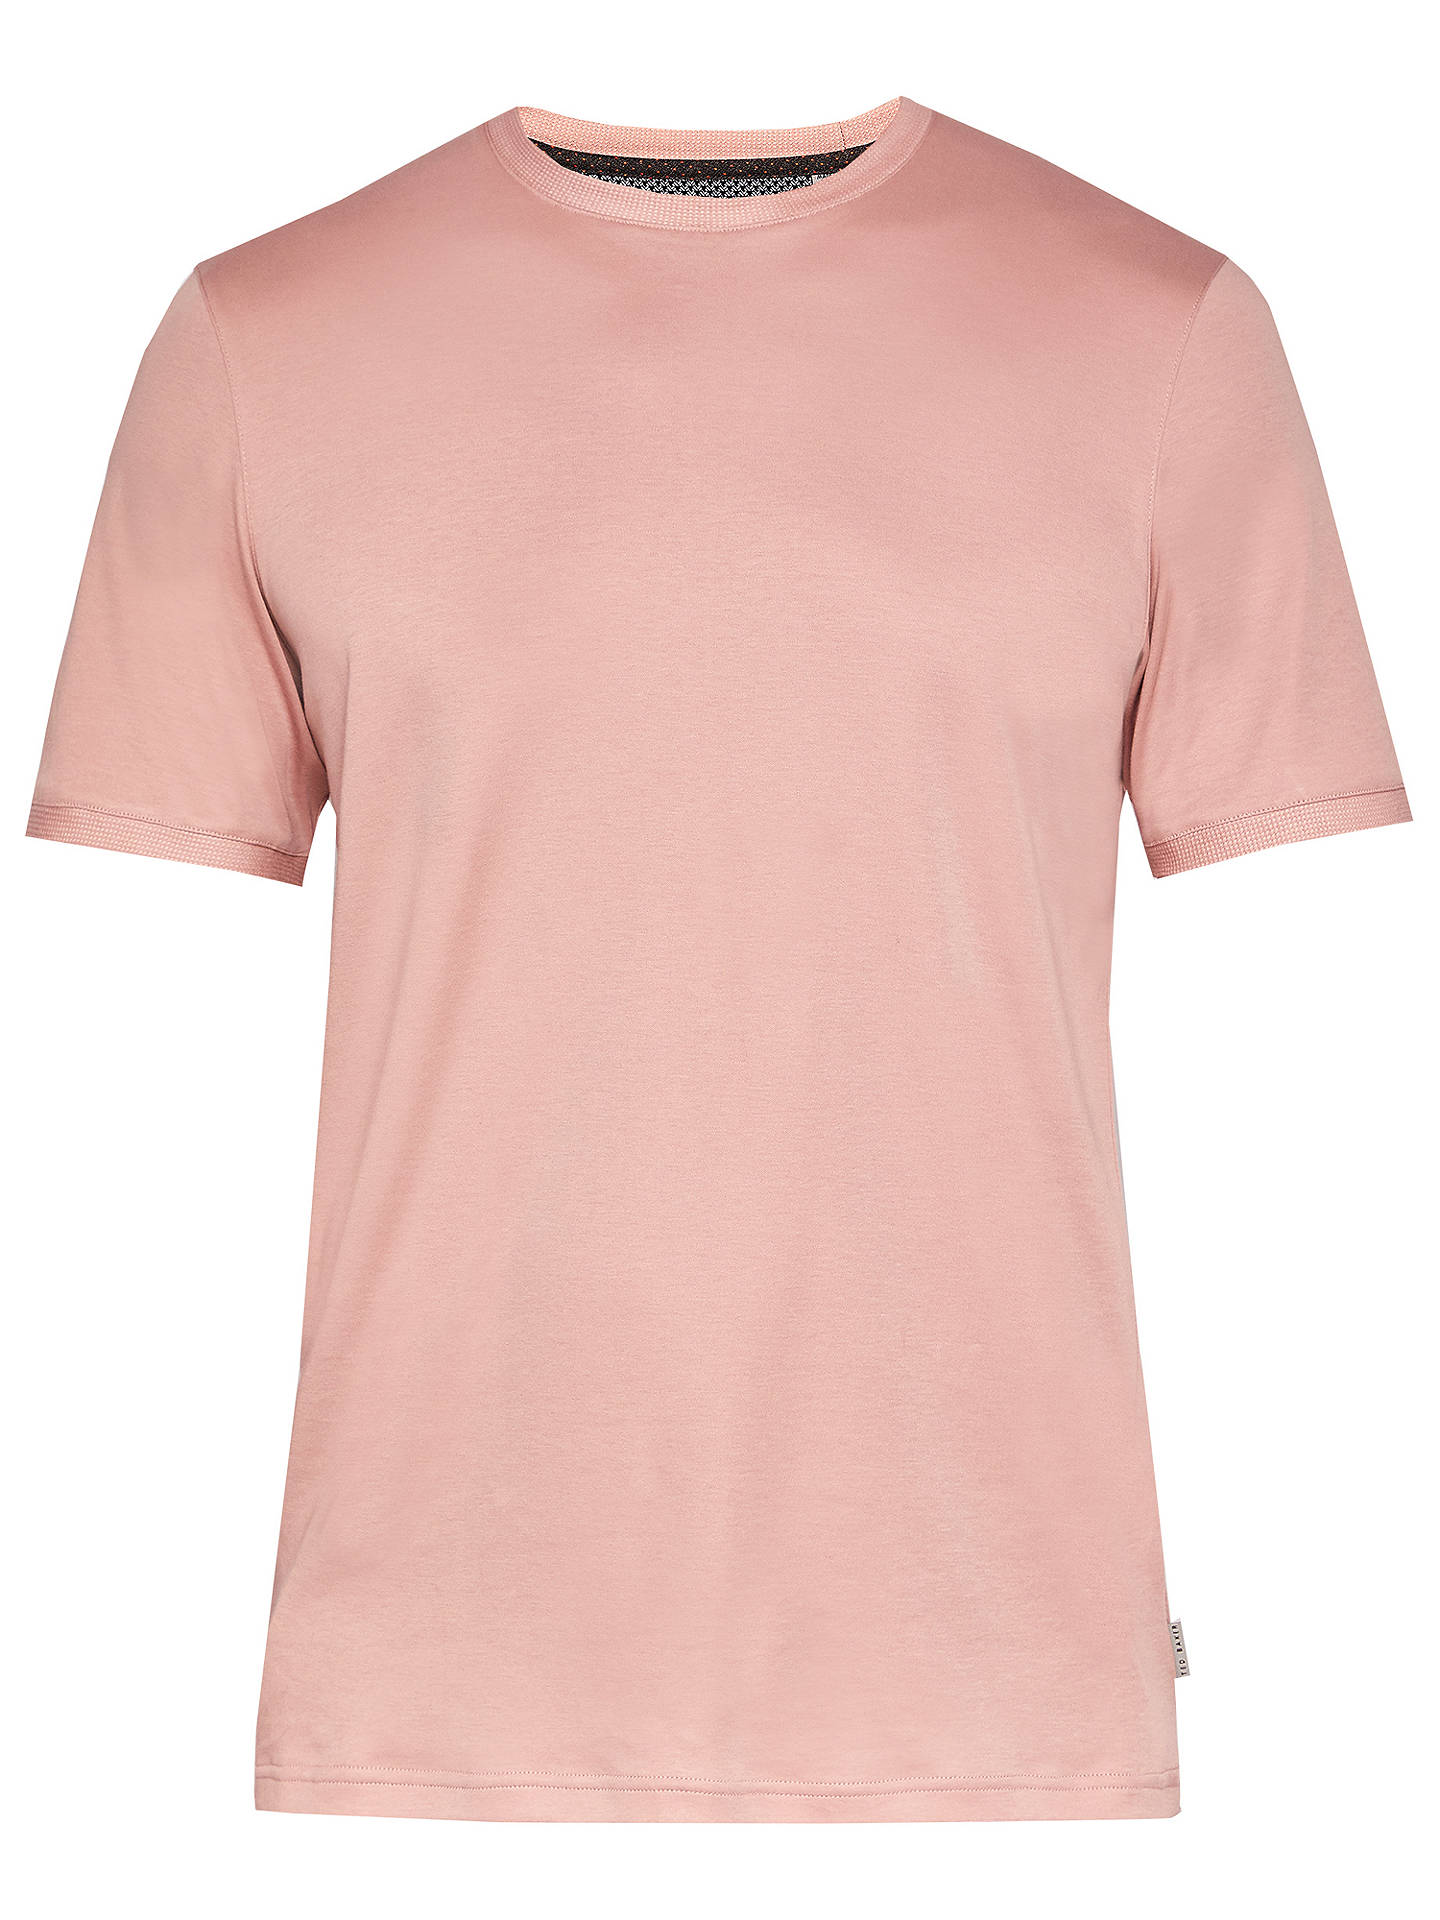 Buy Ted Baker T for Tall Piktt T-Shirt, Dusky Pink, 1 Online at johnlewis.com